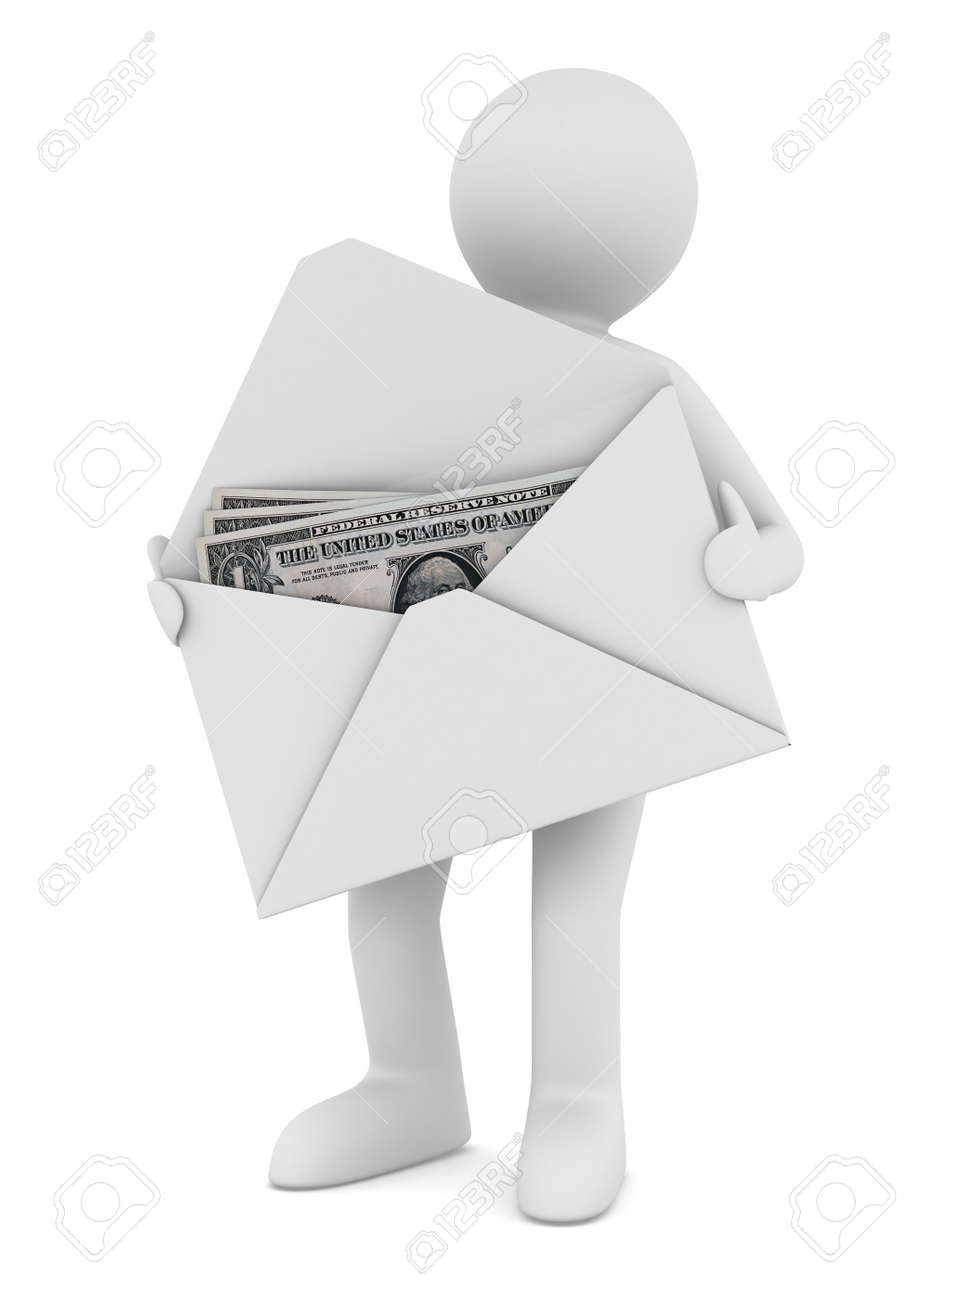 Money in envelope on white background. Isolated 3D image Stock Photo - 8779344